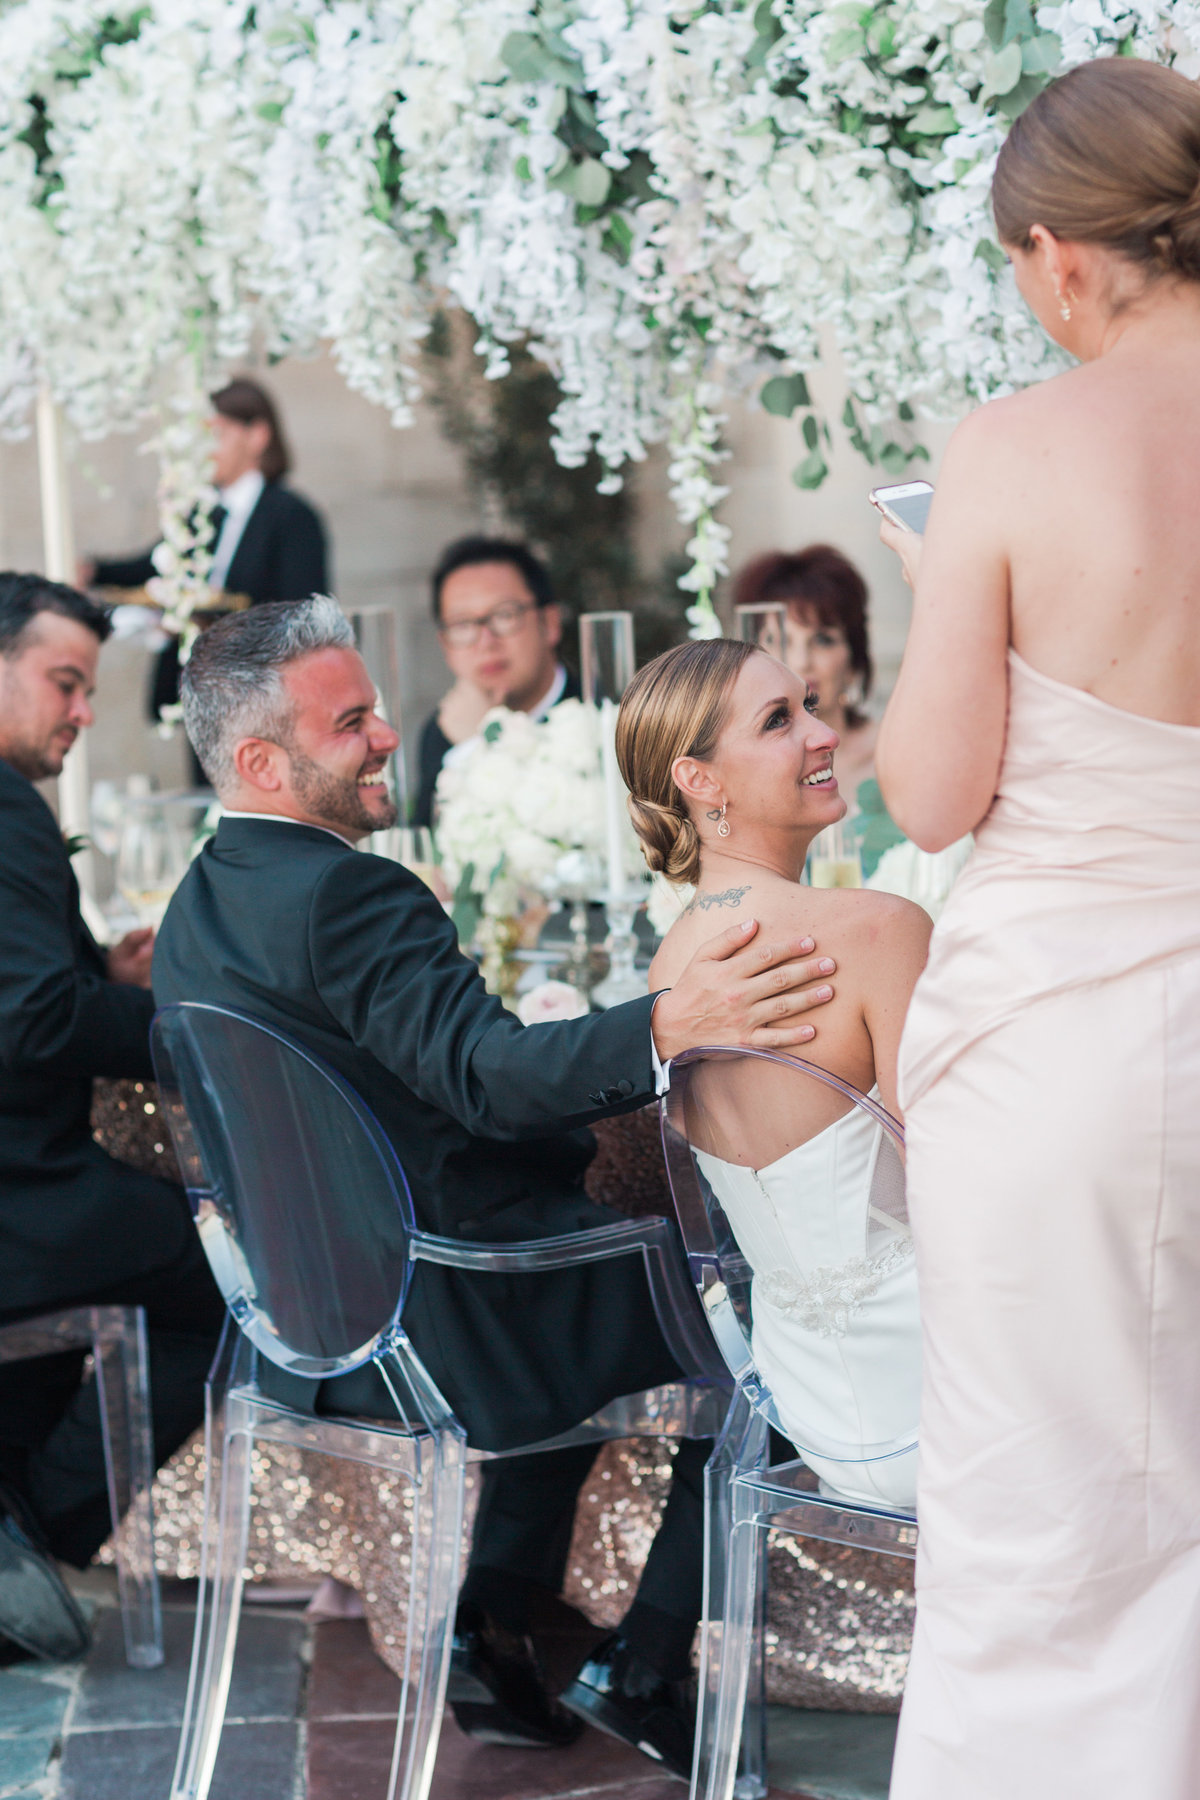 Greystone_Mansion_Intimate_Black_Tie_Wedding_Valorie_Darling_Photography - 179 of 206